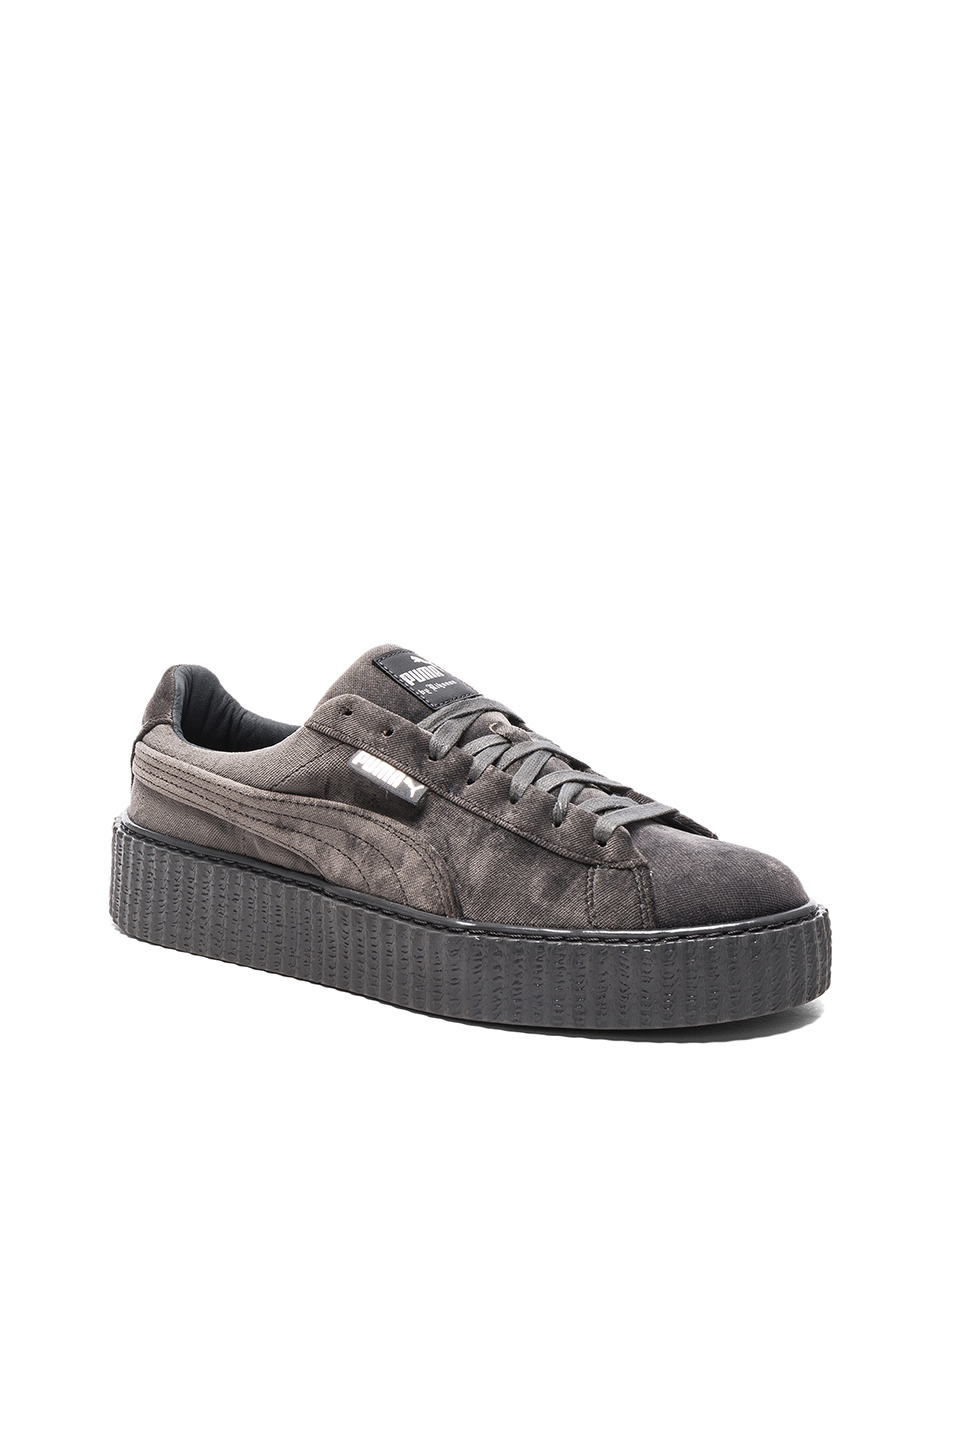 Fenty by Puma Creepers Velvet in Gray